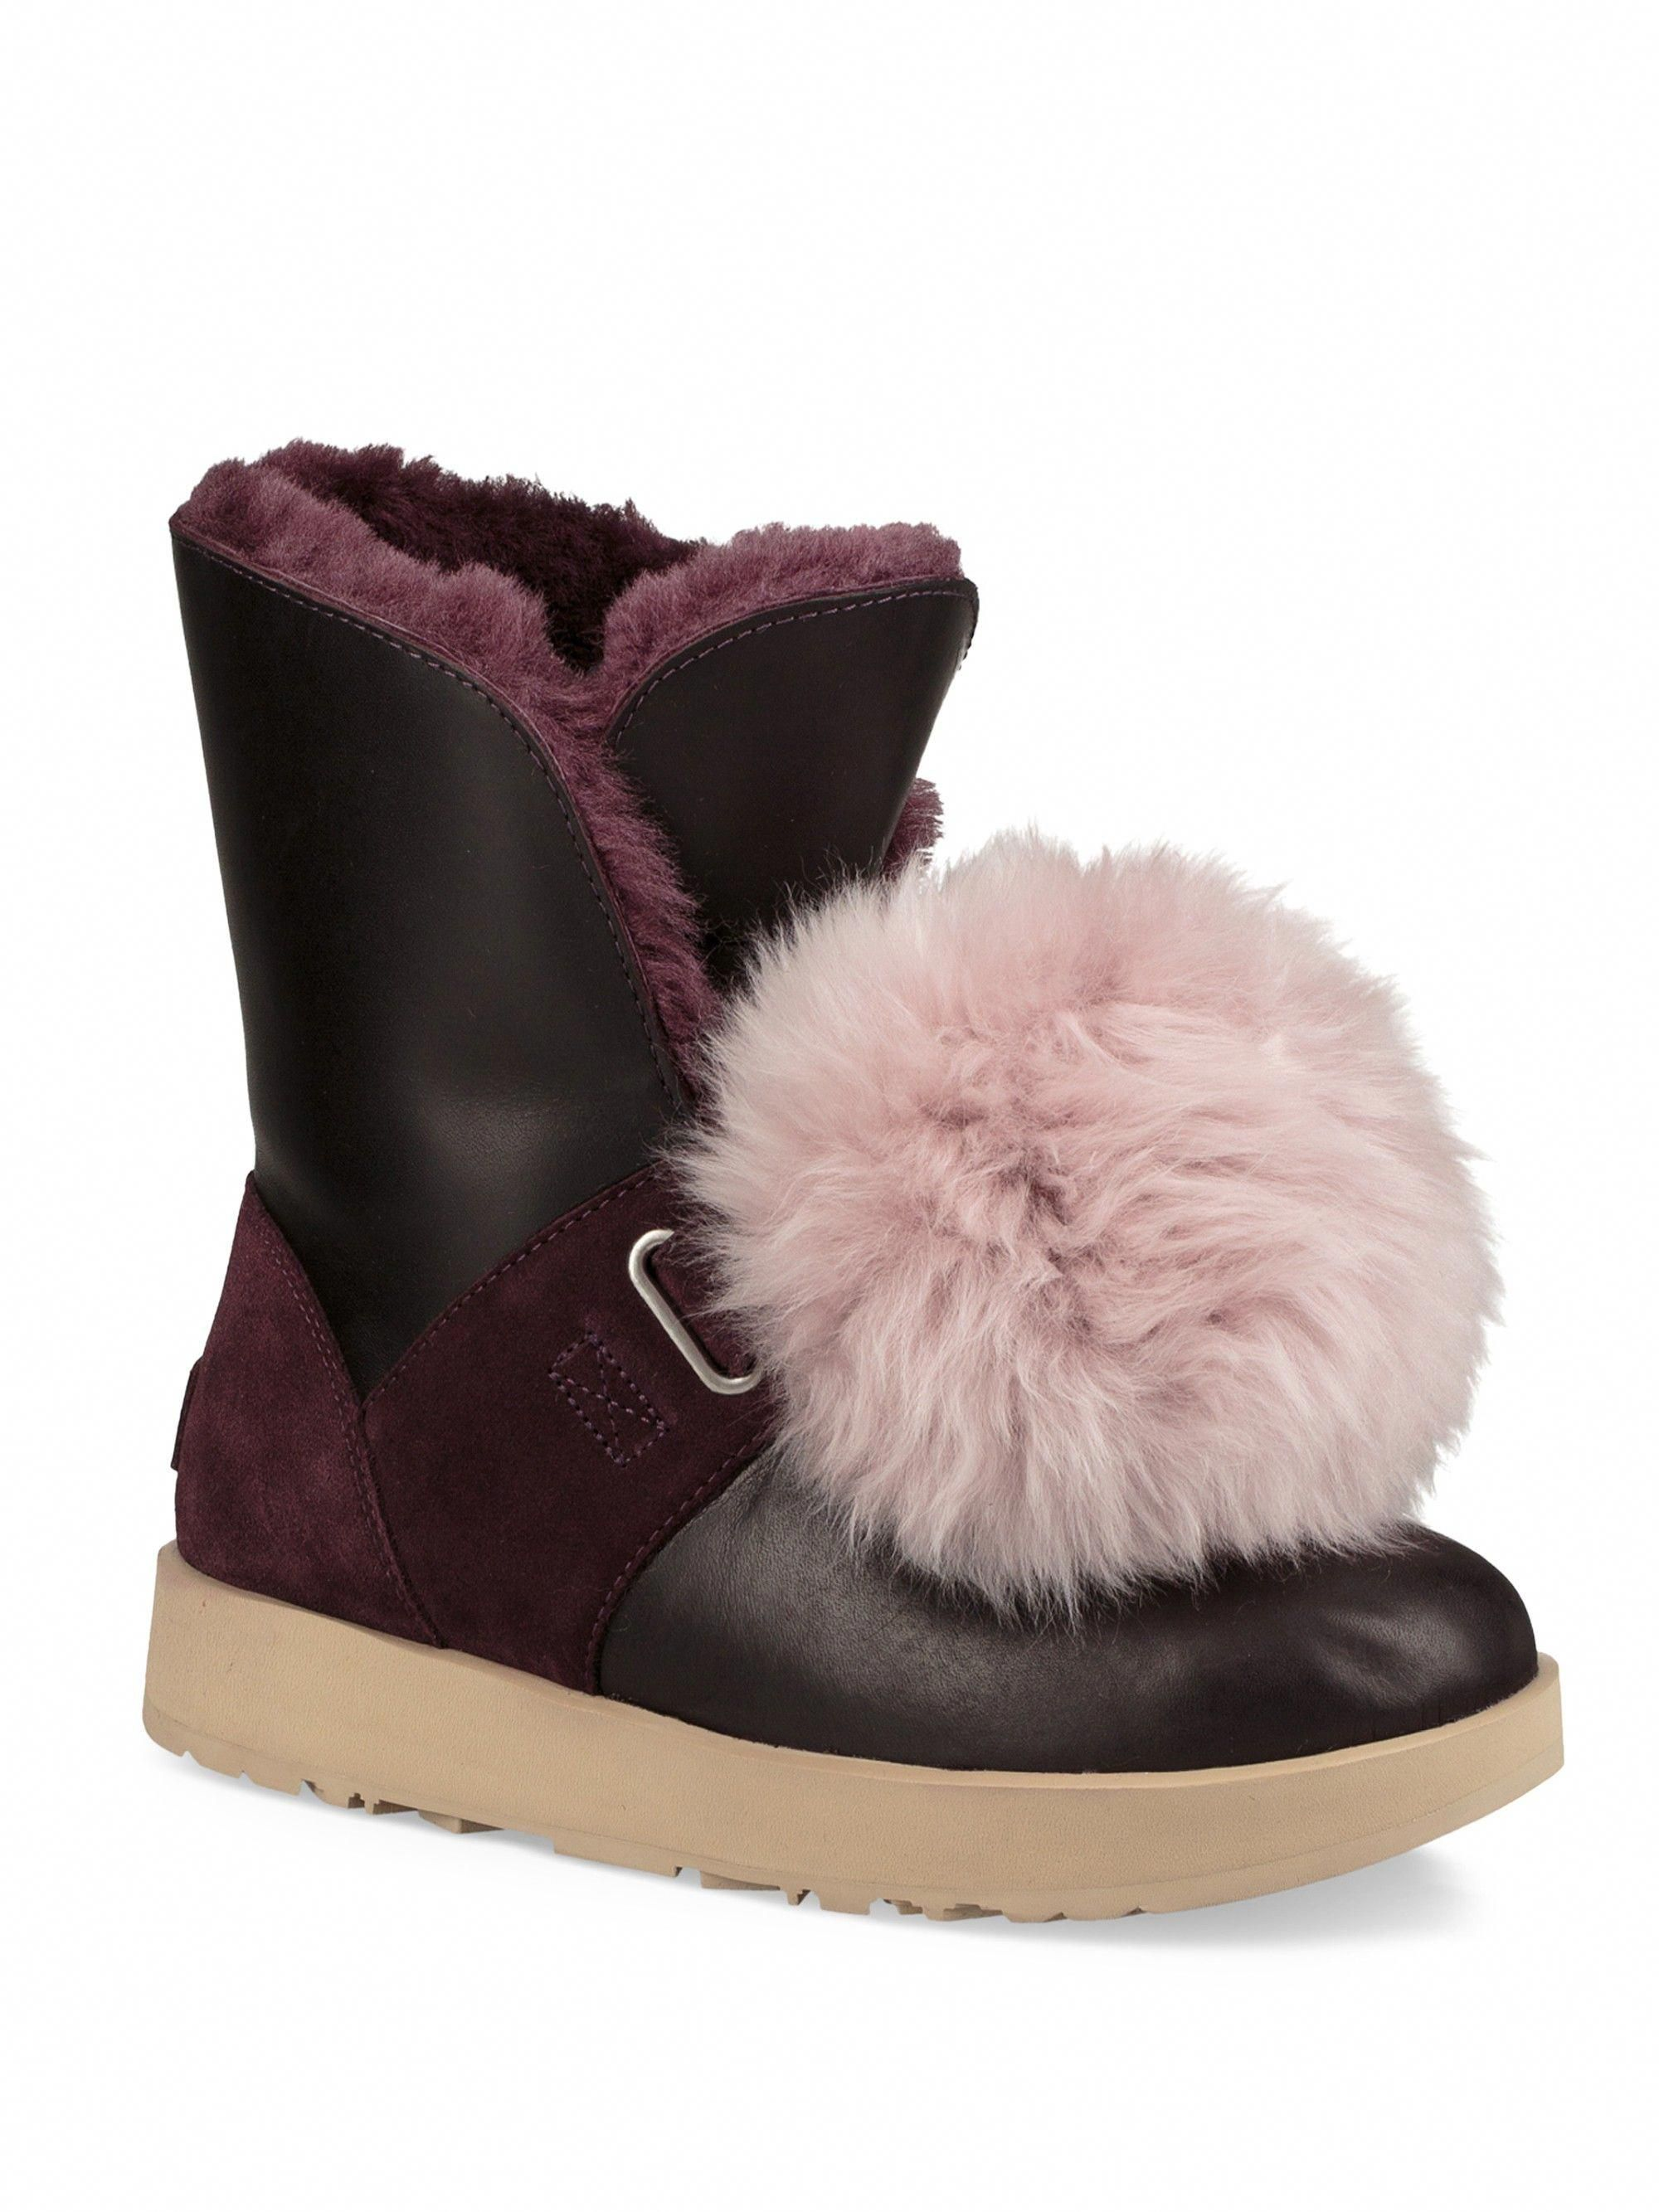 97e9ecb975c Ugg Australia Isley Pom-Pom Waterproof Leather Boots - Chestnut 6.5 ...